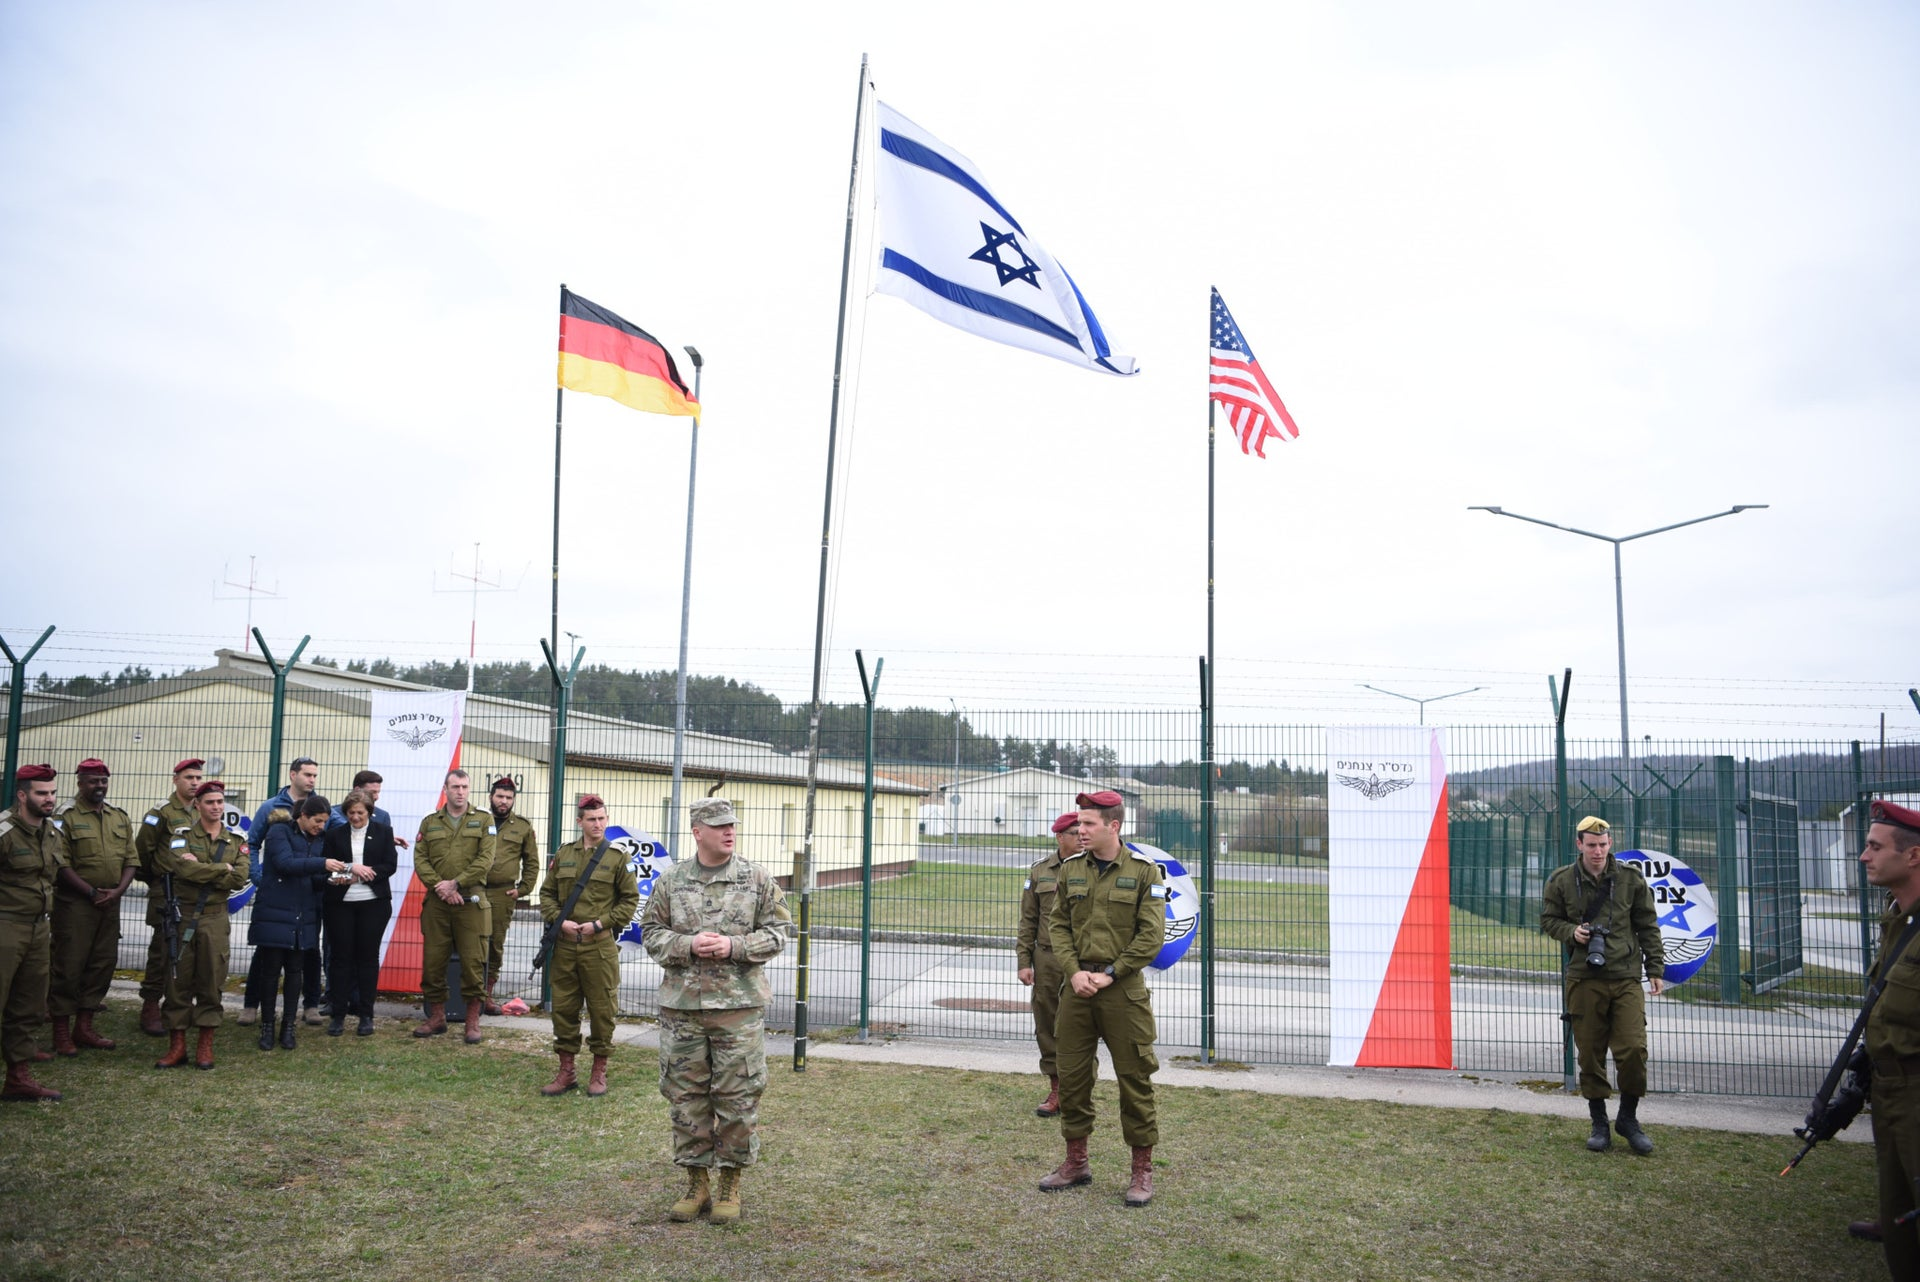 Israeli soldiers take part in a NATO exercise in Germany, April 2019.